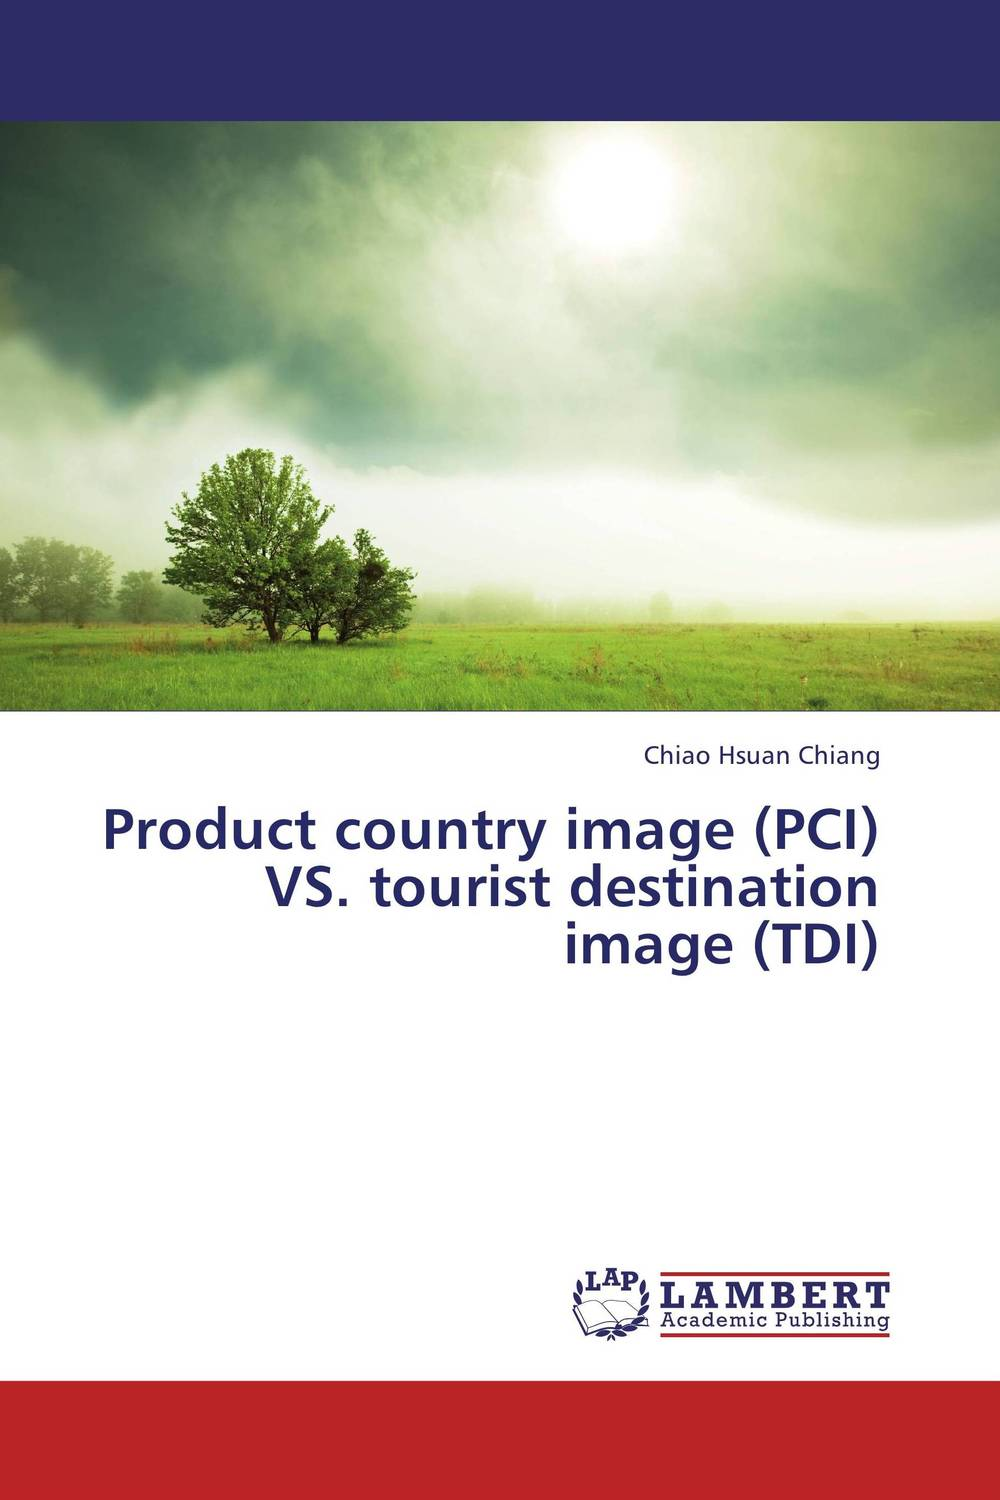 Product country image (PCI) VS. tourist destination image (TDI) divided loyalties